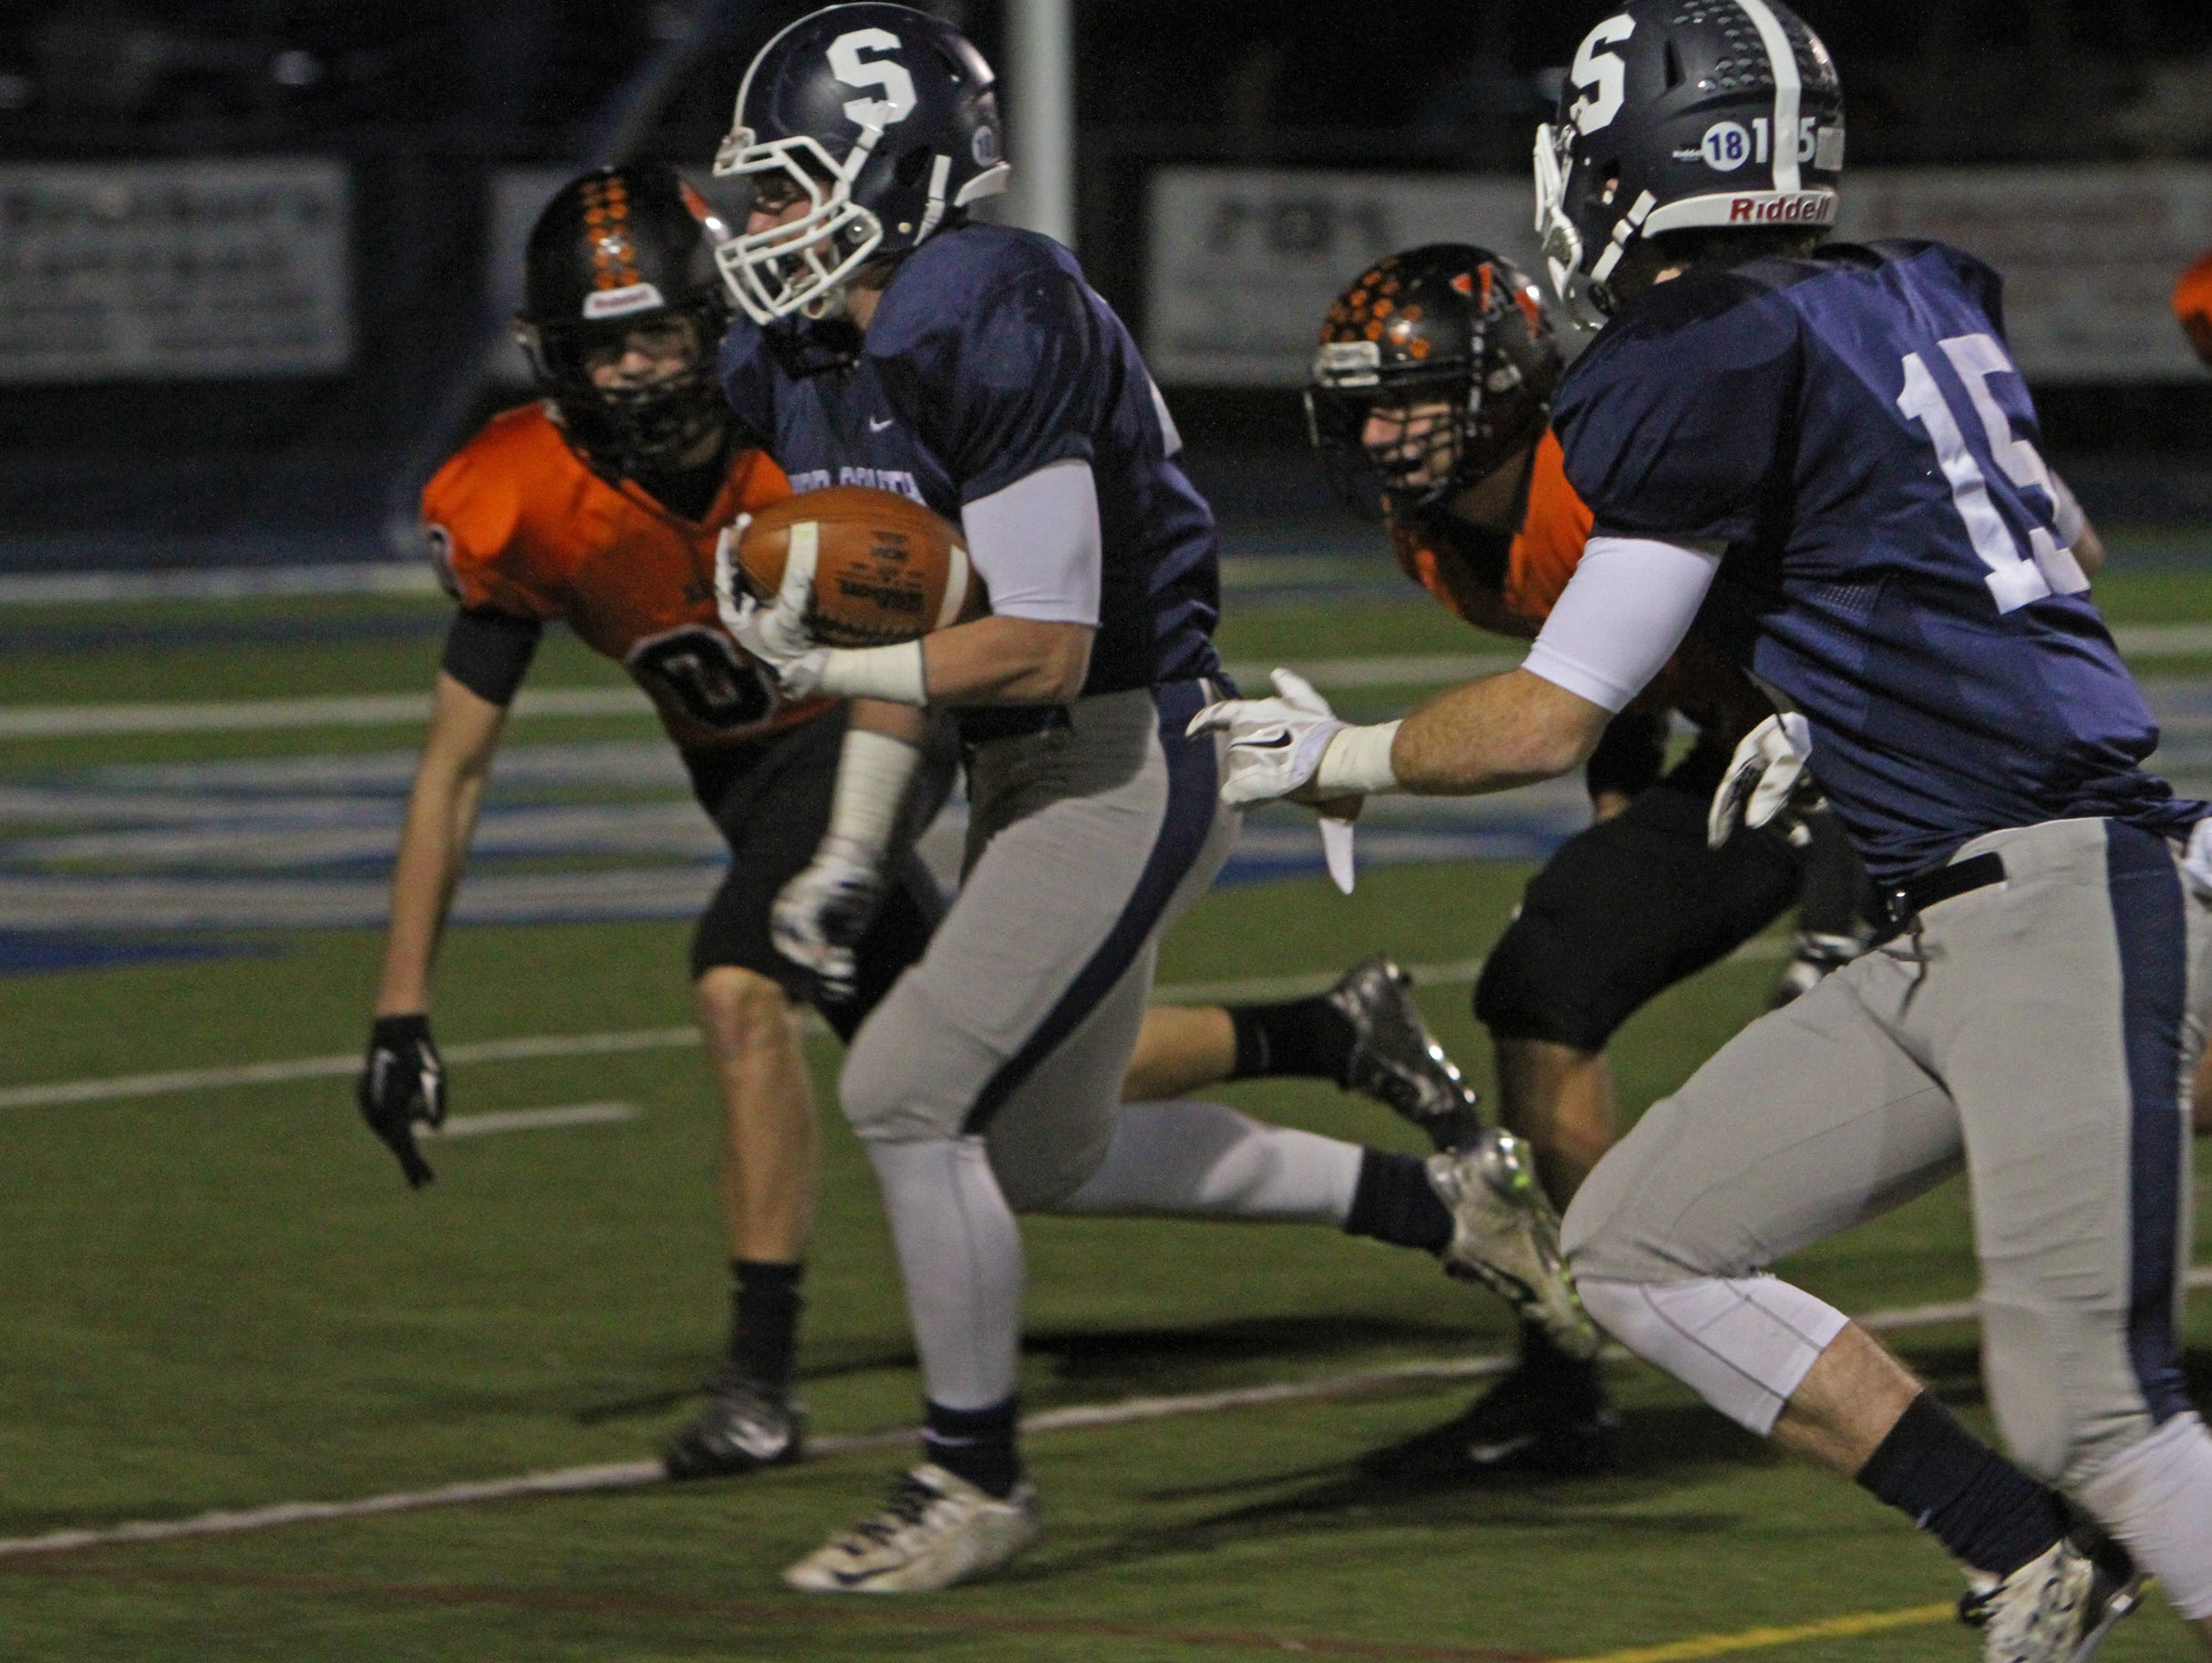 Middletown South's Cole Rogers takes the ball through left side and in for a his team's first touchdown of game. Middletown North vs Middletown South in NJSIAA North II Group IV semifinal football in Middletown, NJ on November 20, 2015